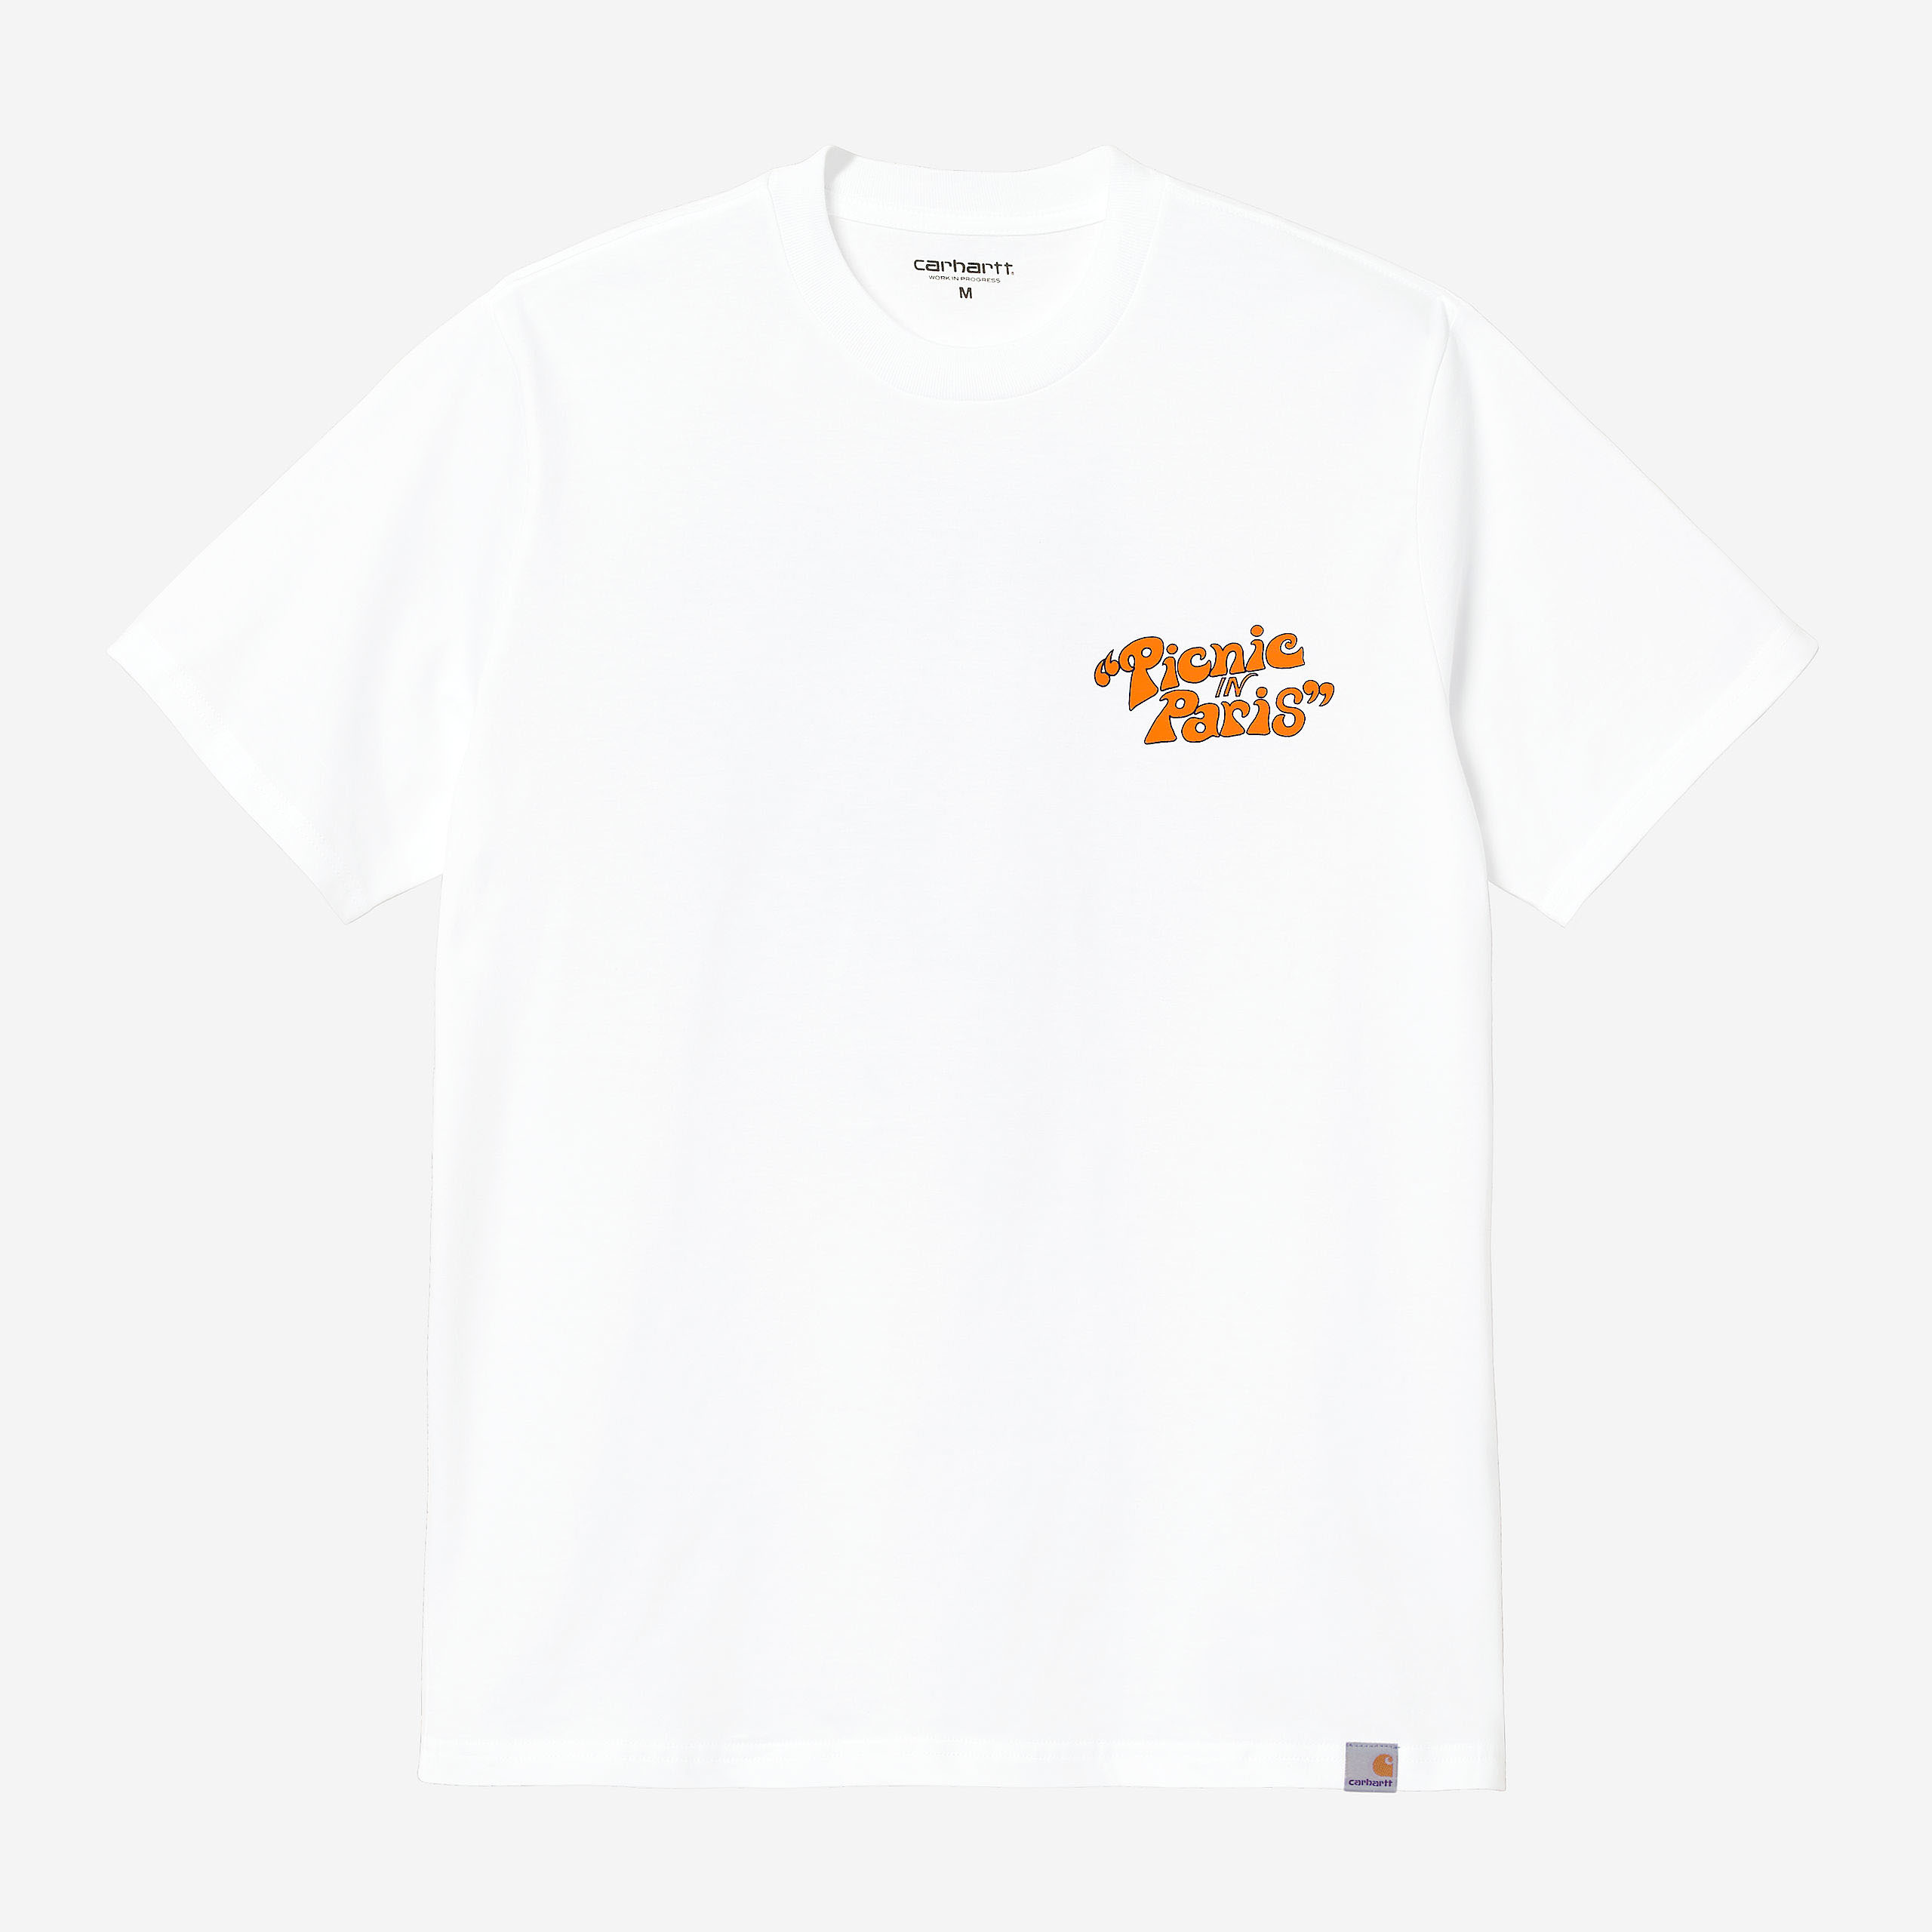 Carhartt WIP - PICNIC IN PARIS  T-SHIRT - White